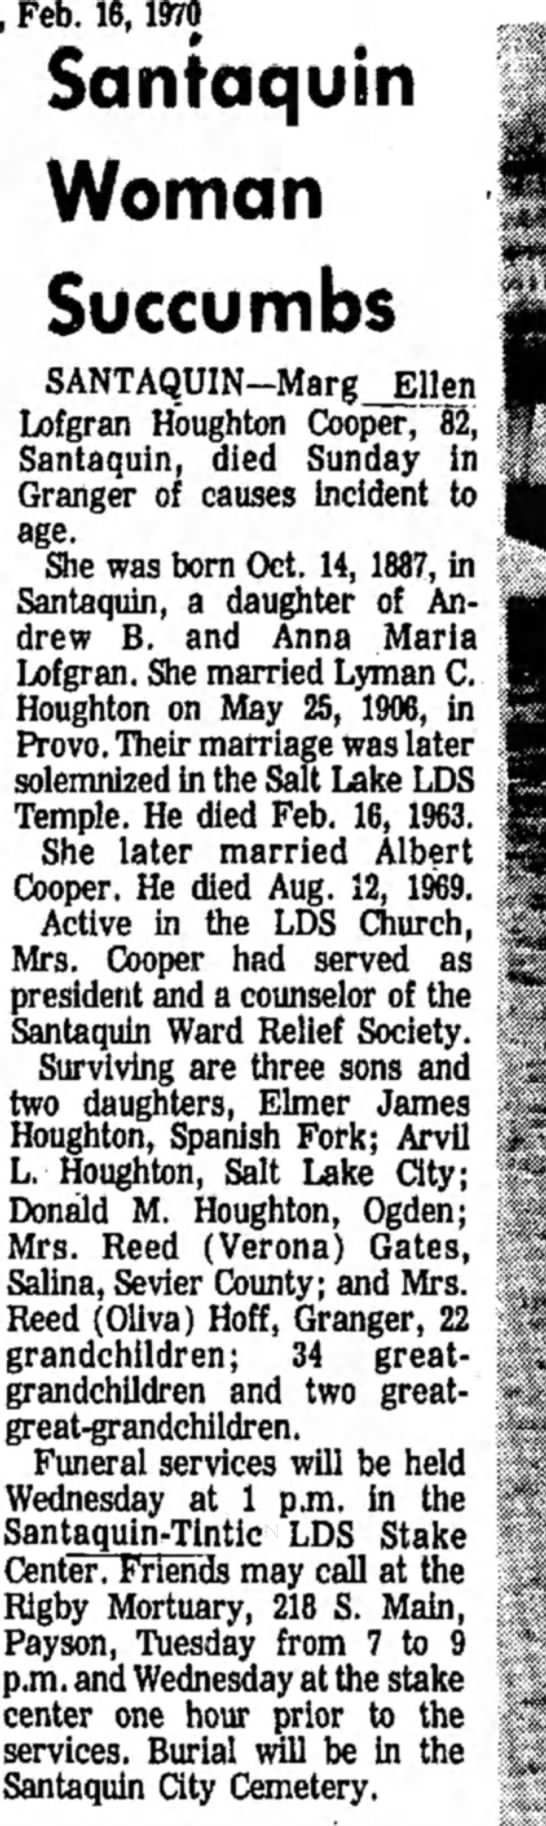 - , Feb. 16,1970 Saniaquin Woman Succumbs...